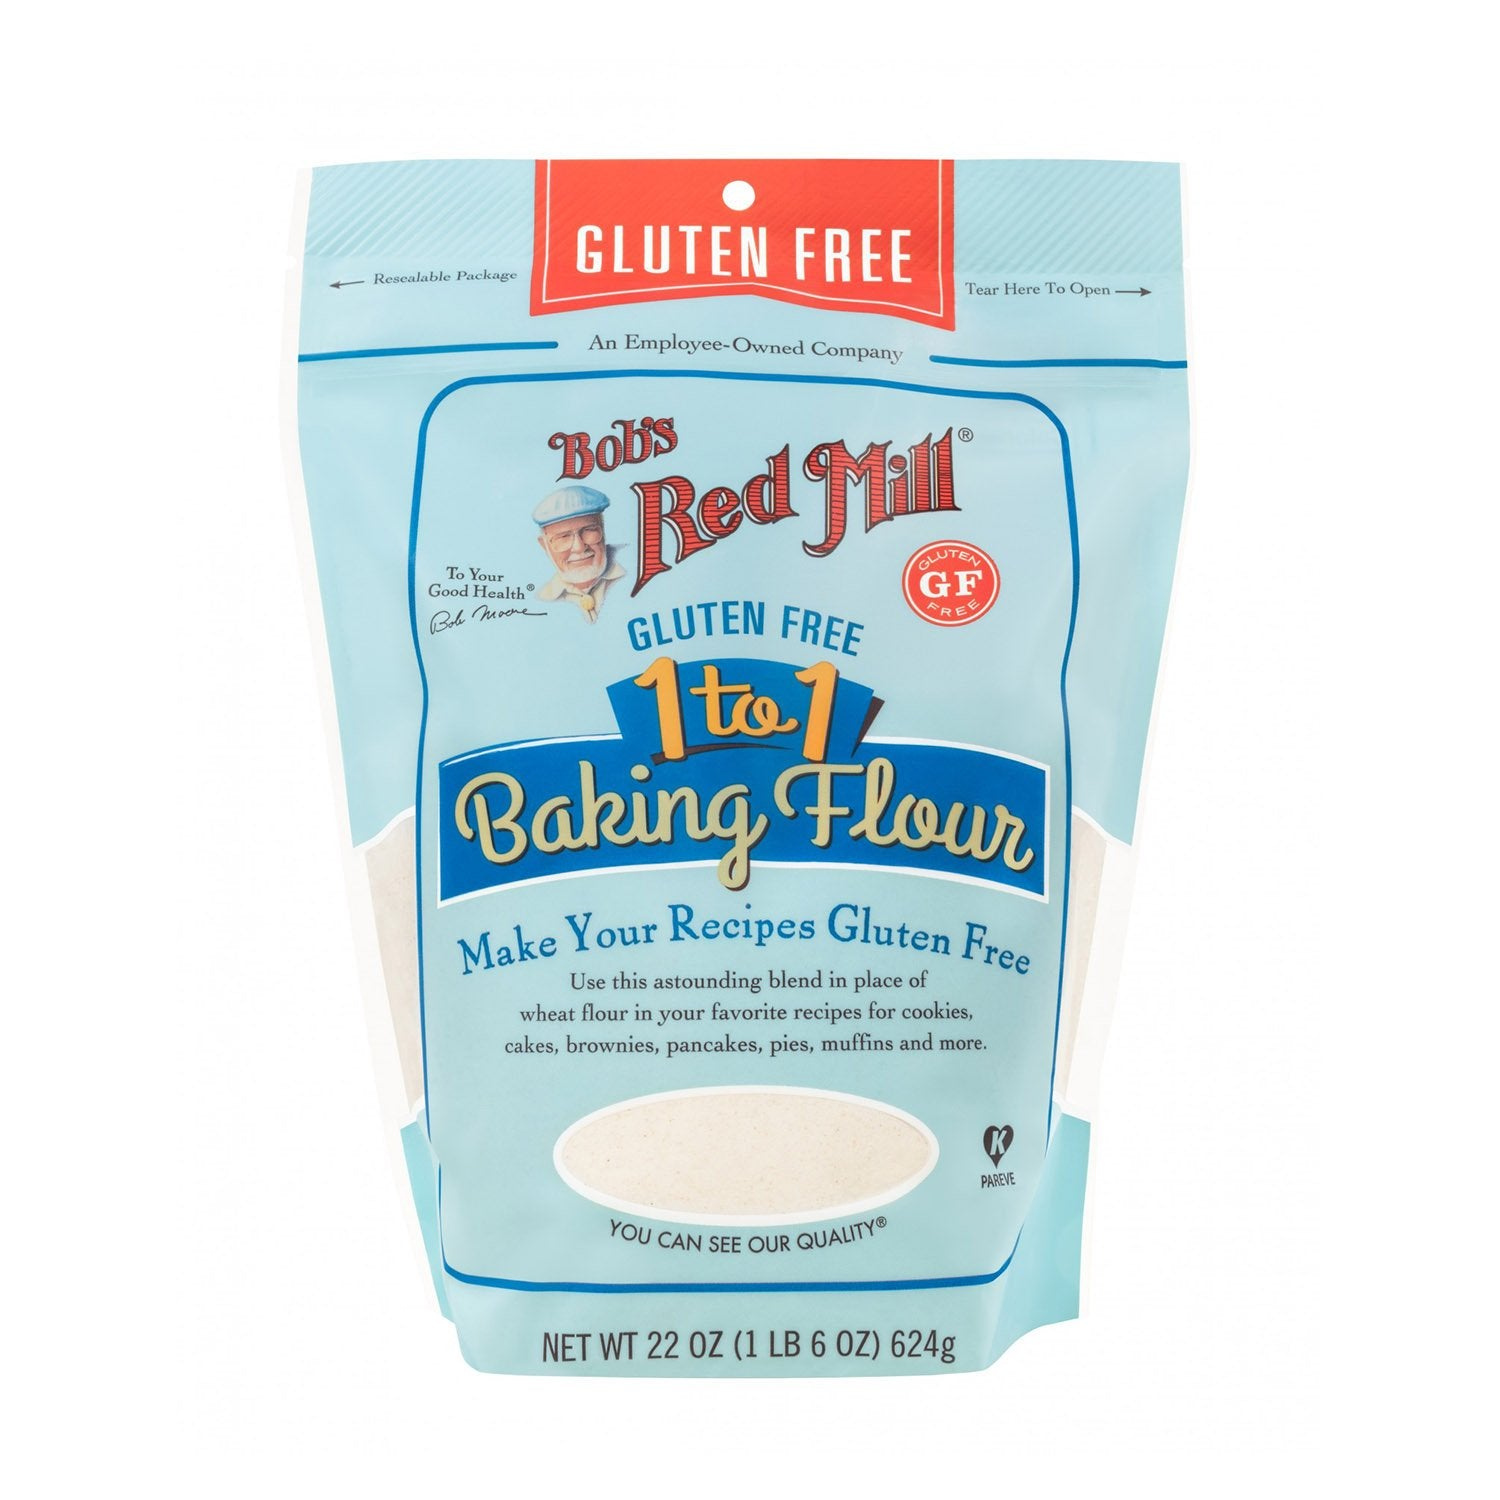 Bob's Red Mill Gluten Free 1-to-1 Baking Flour - Multiple